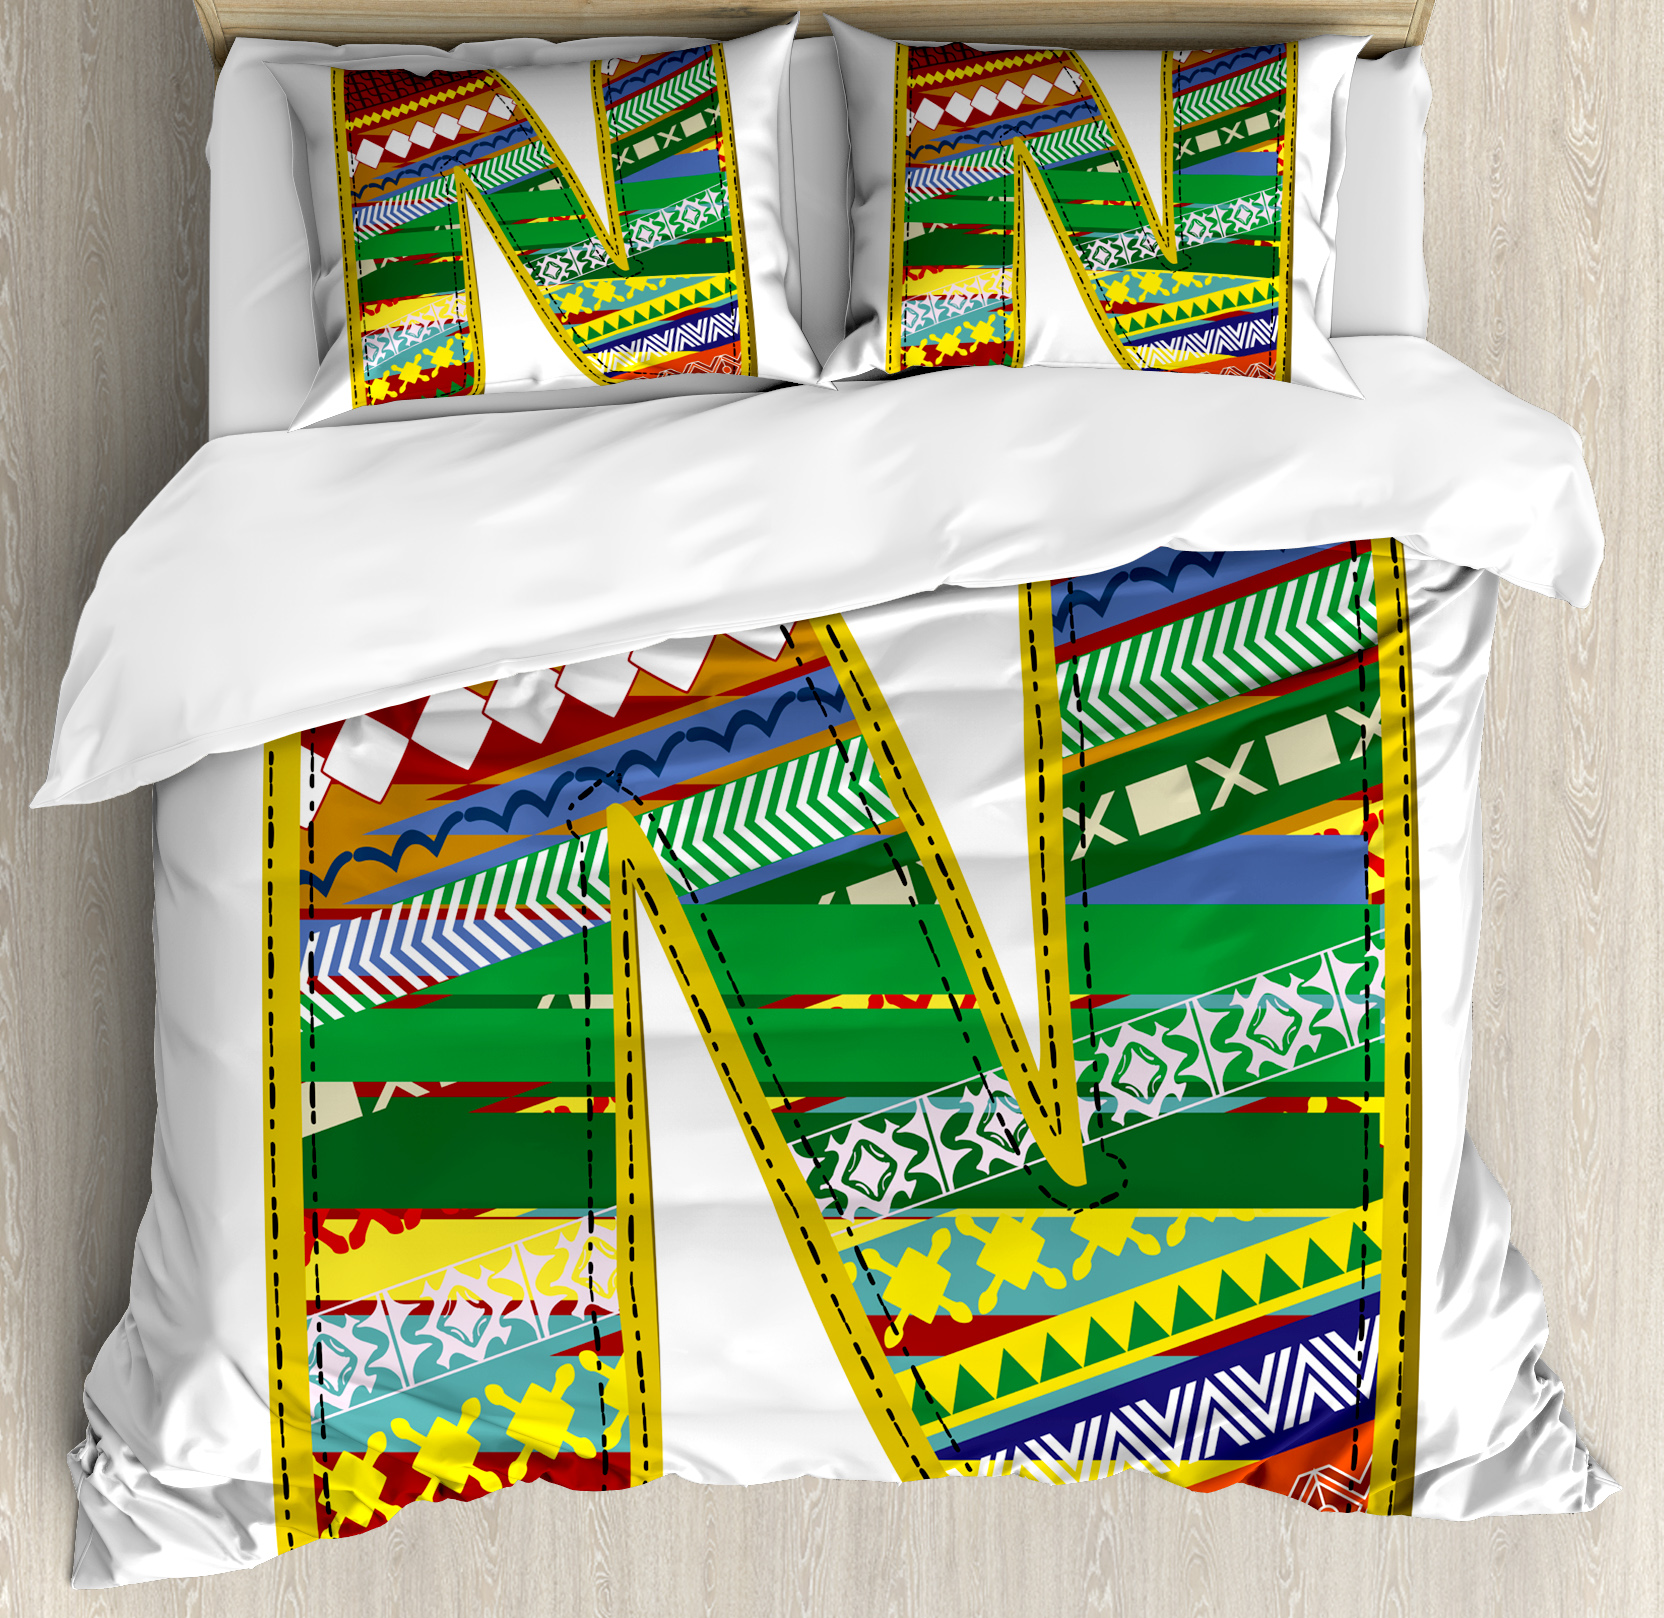 Letter N King Size Duvet Cover Set, N Letter with Yellow ...